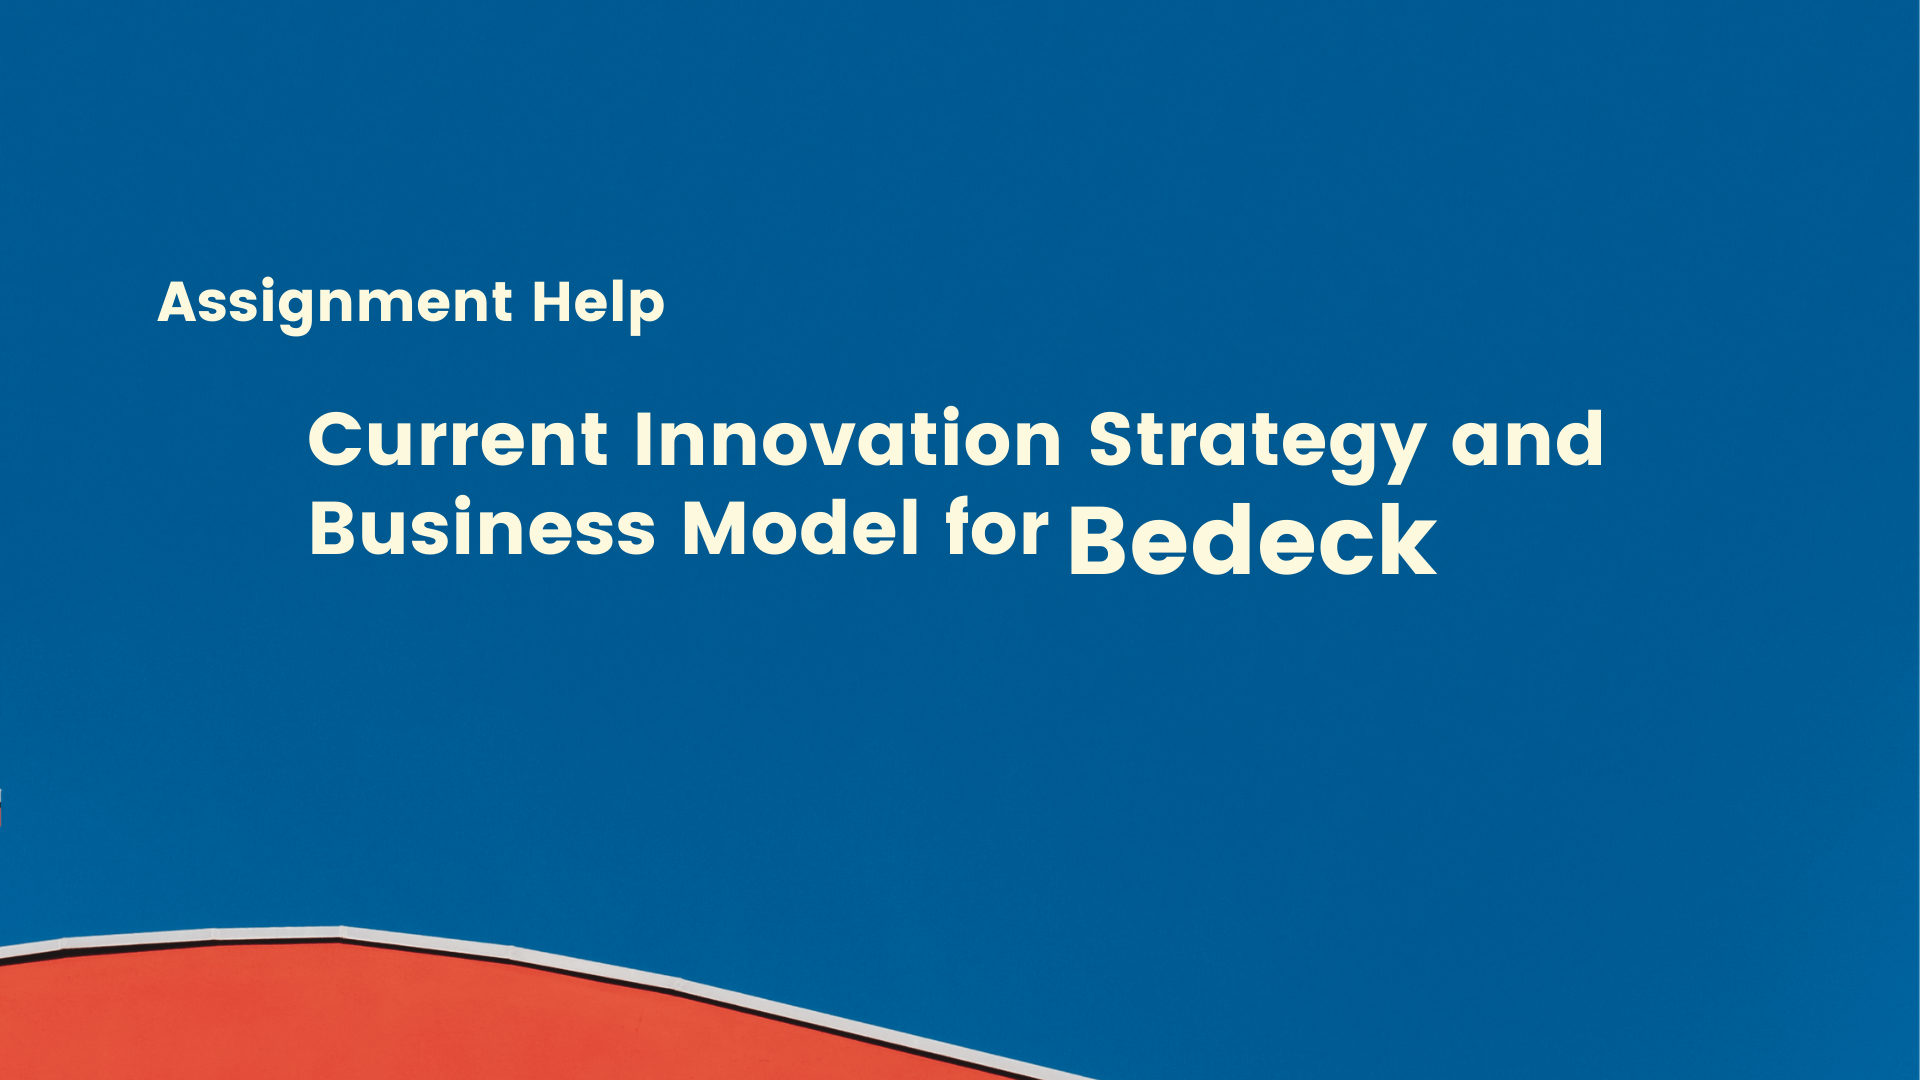 Current Innovation Strategy and Business Model of Bedeck-Part 1